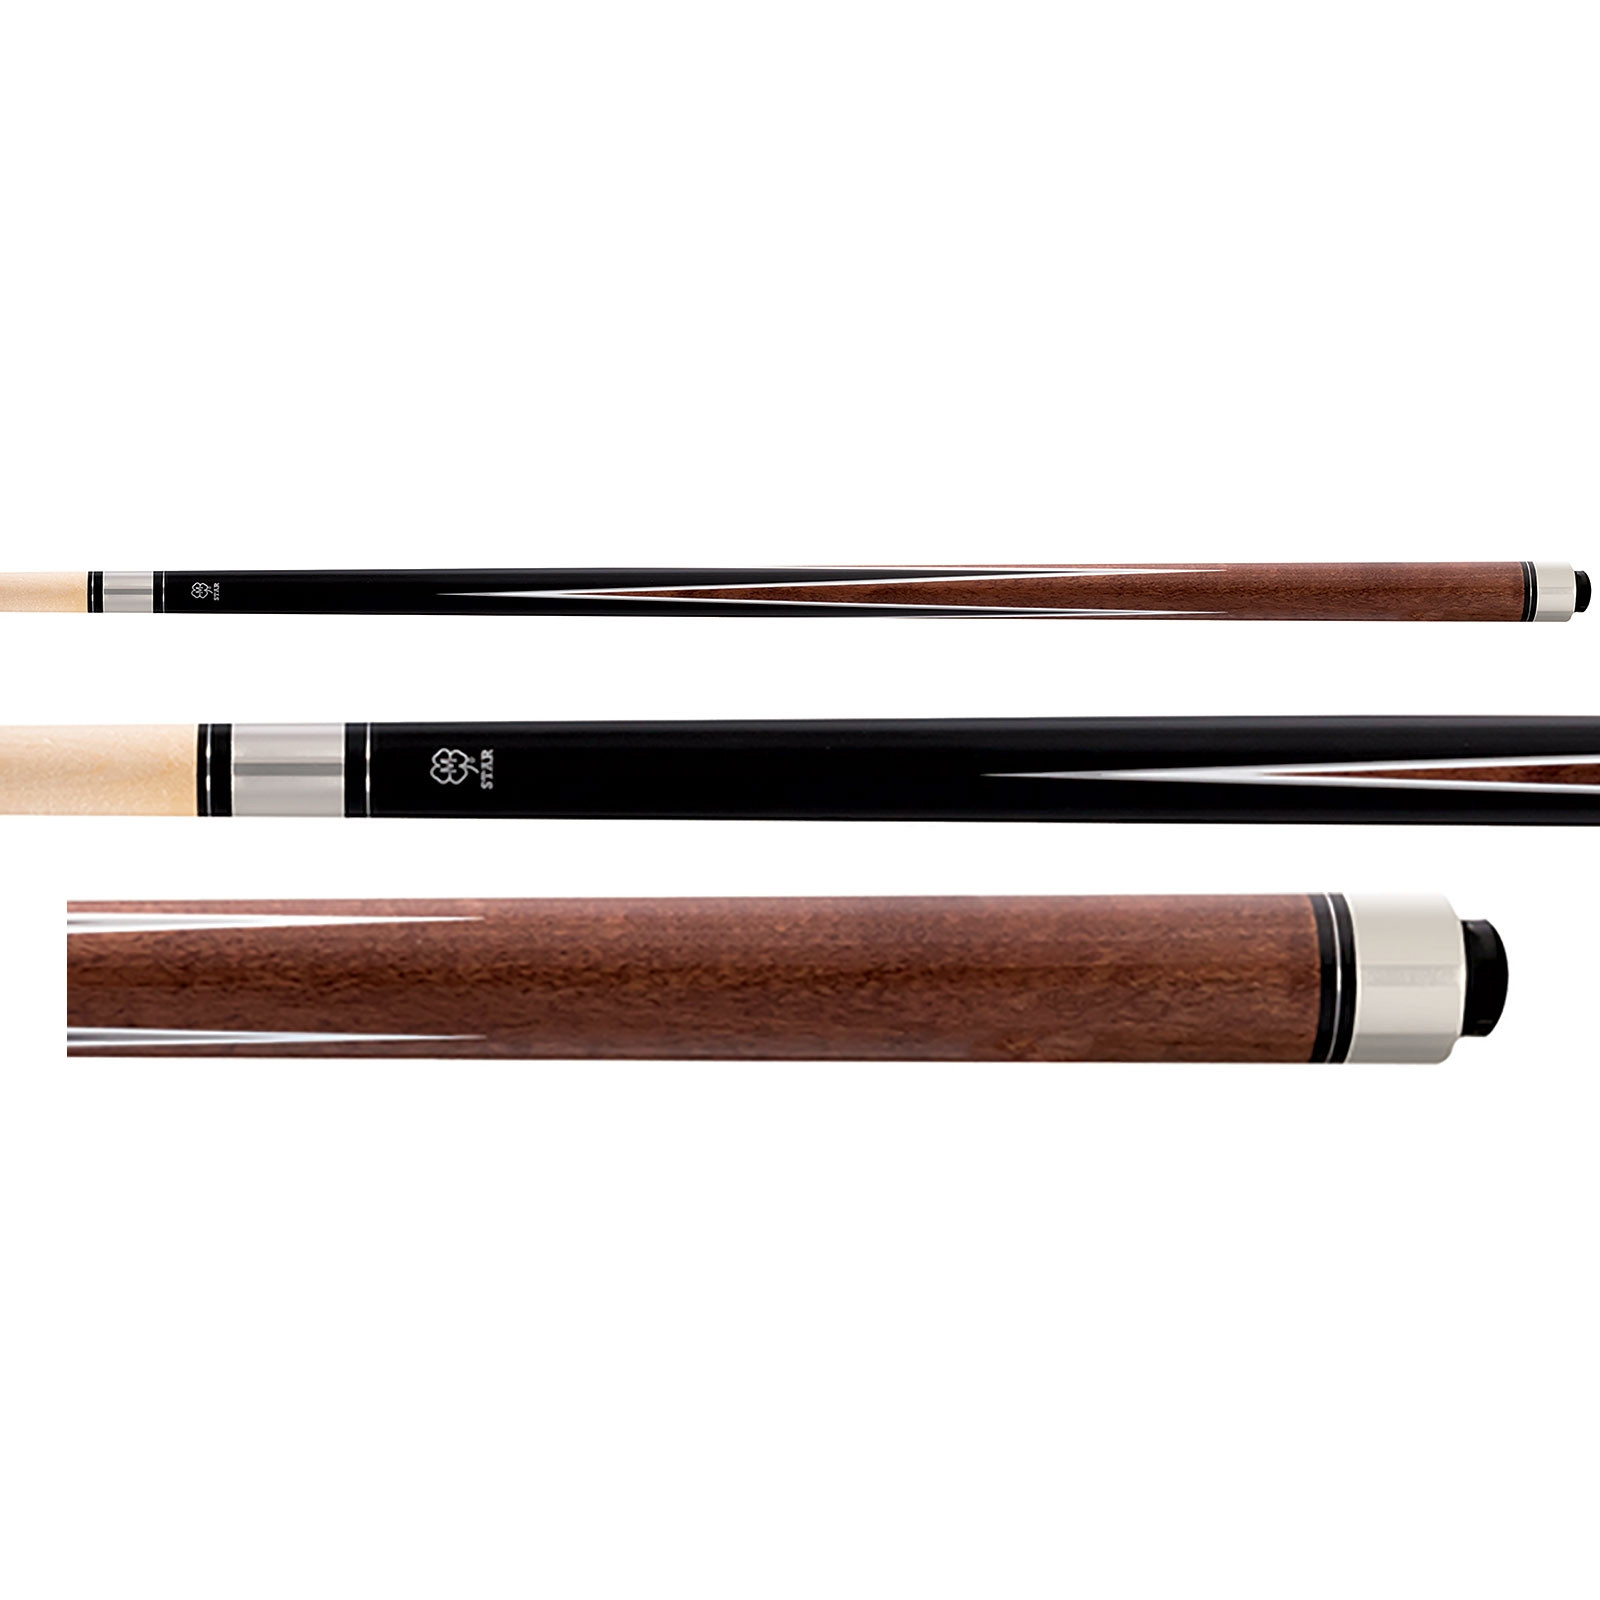 McDermott Star S70 Pool Cue - Black/Brown